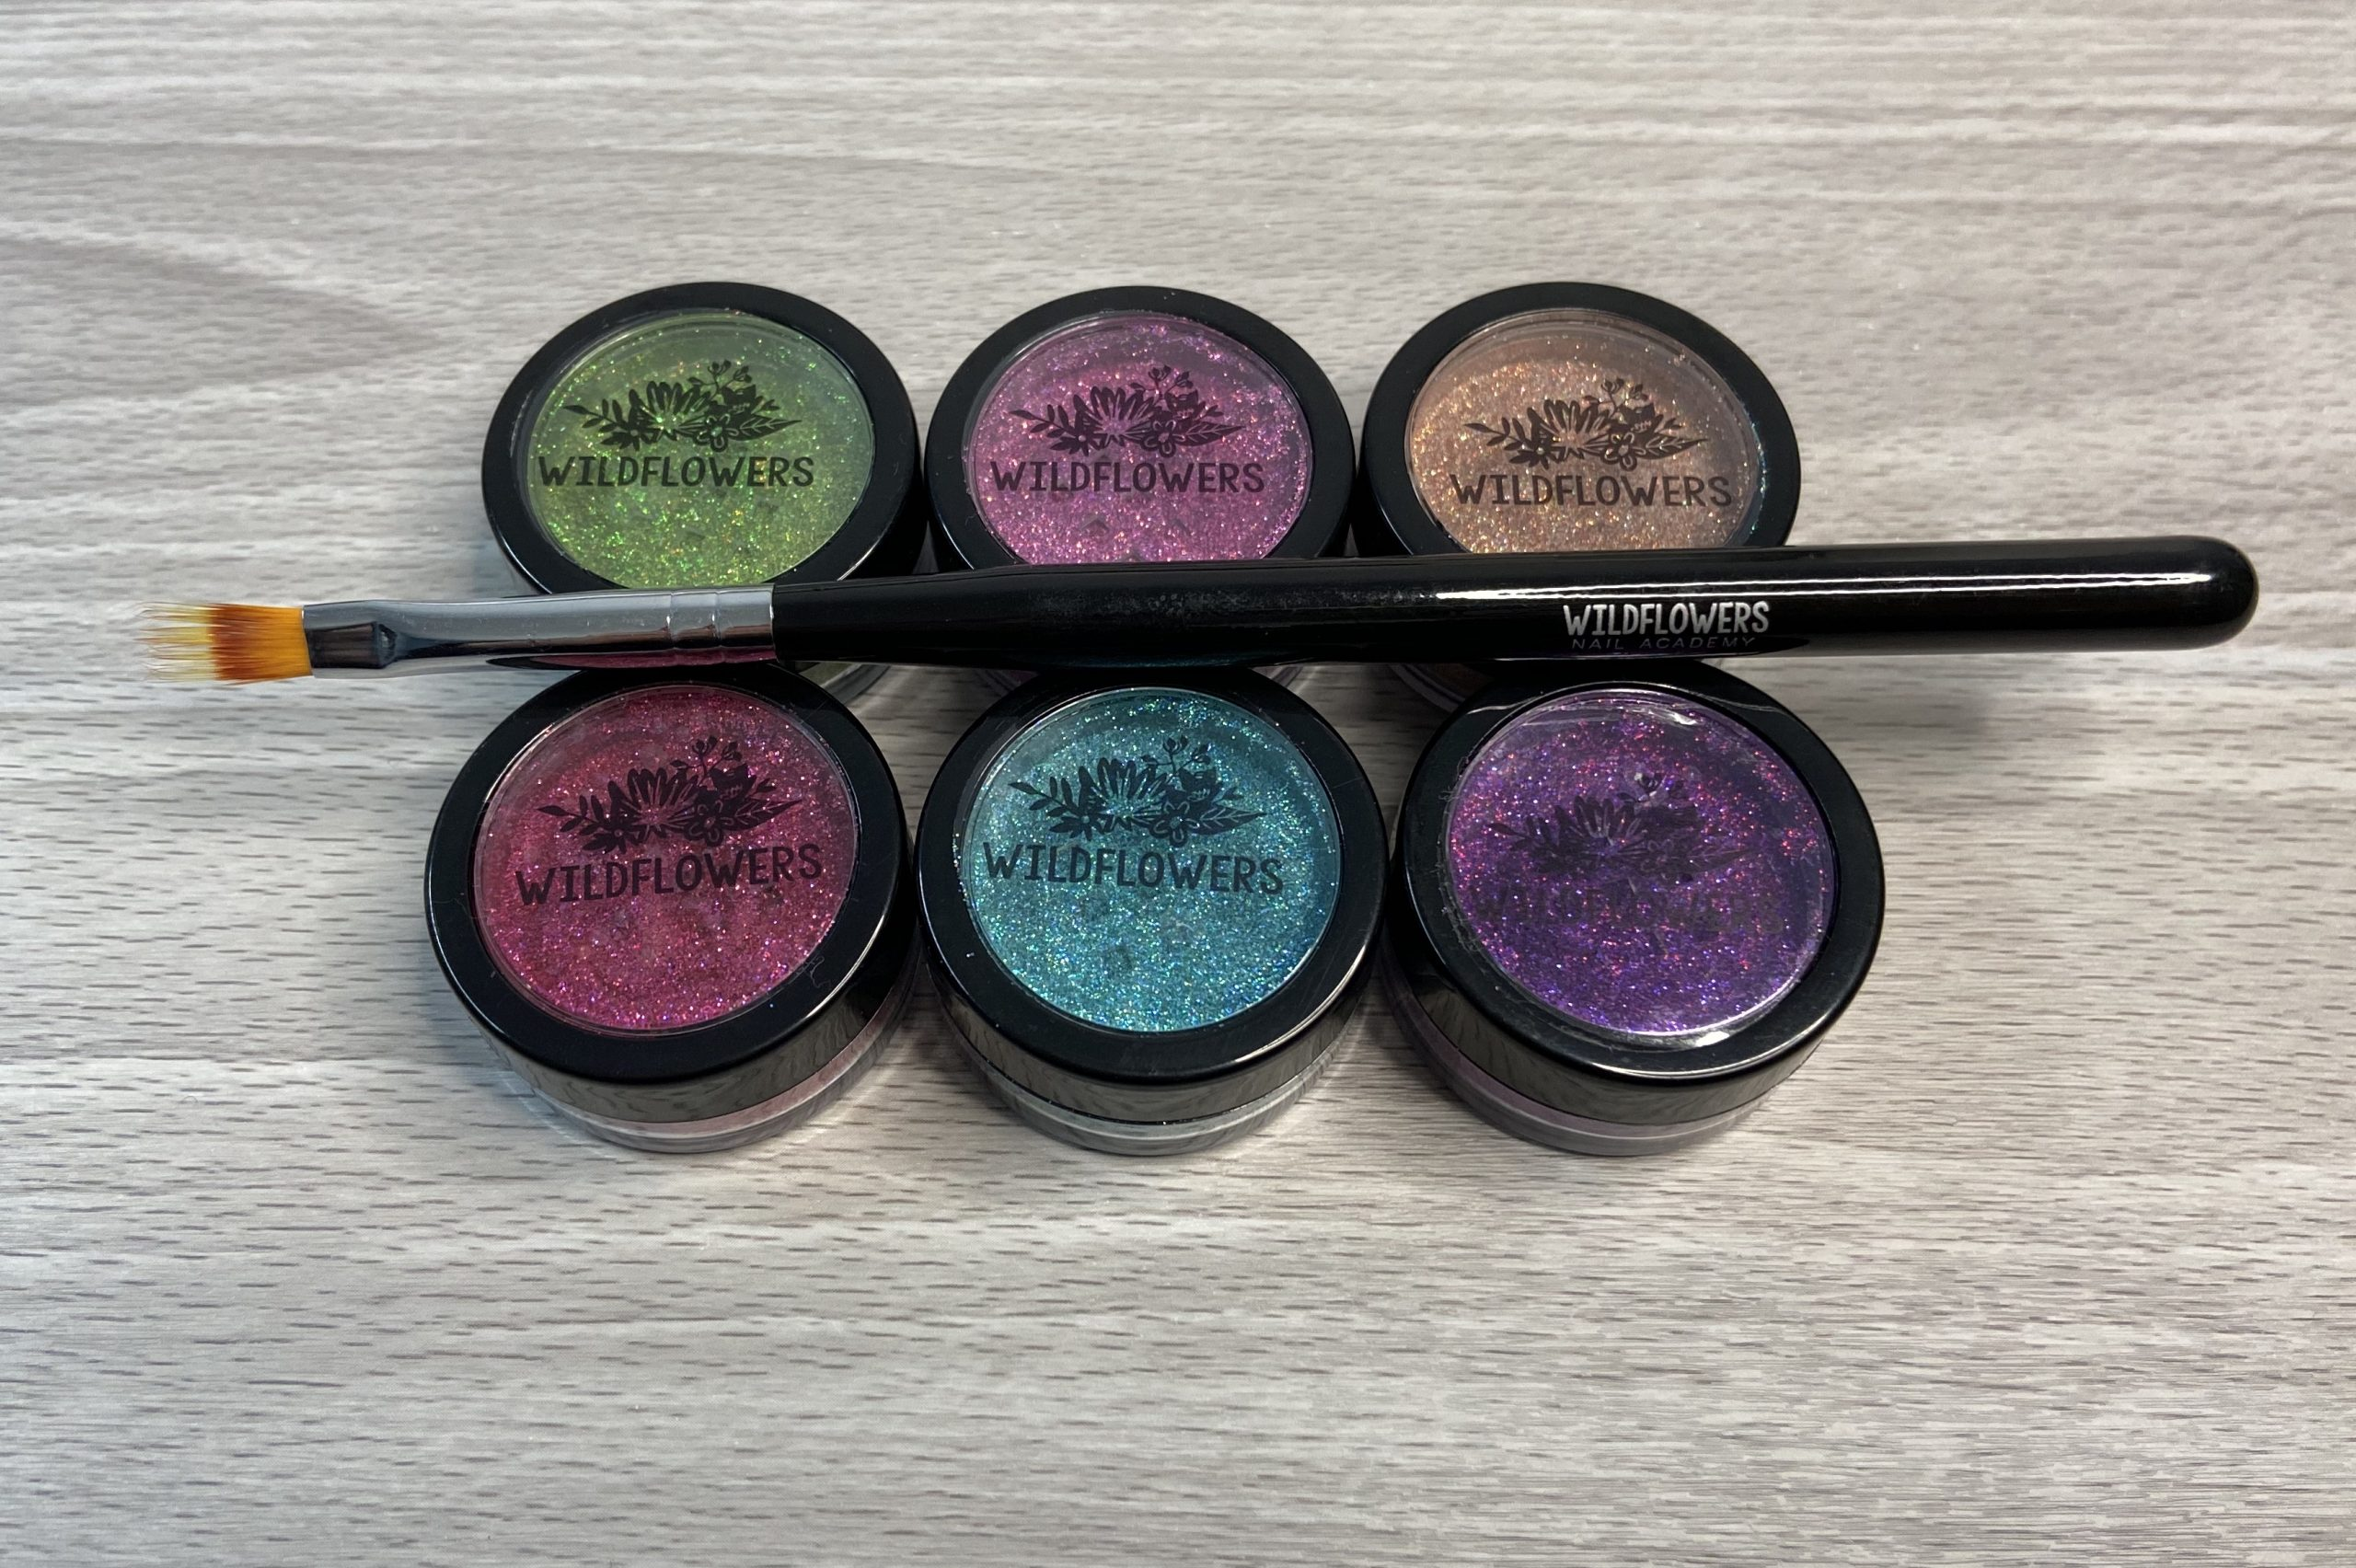 Wildflowers Glitters and Ombre Brush Review